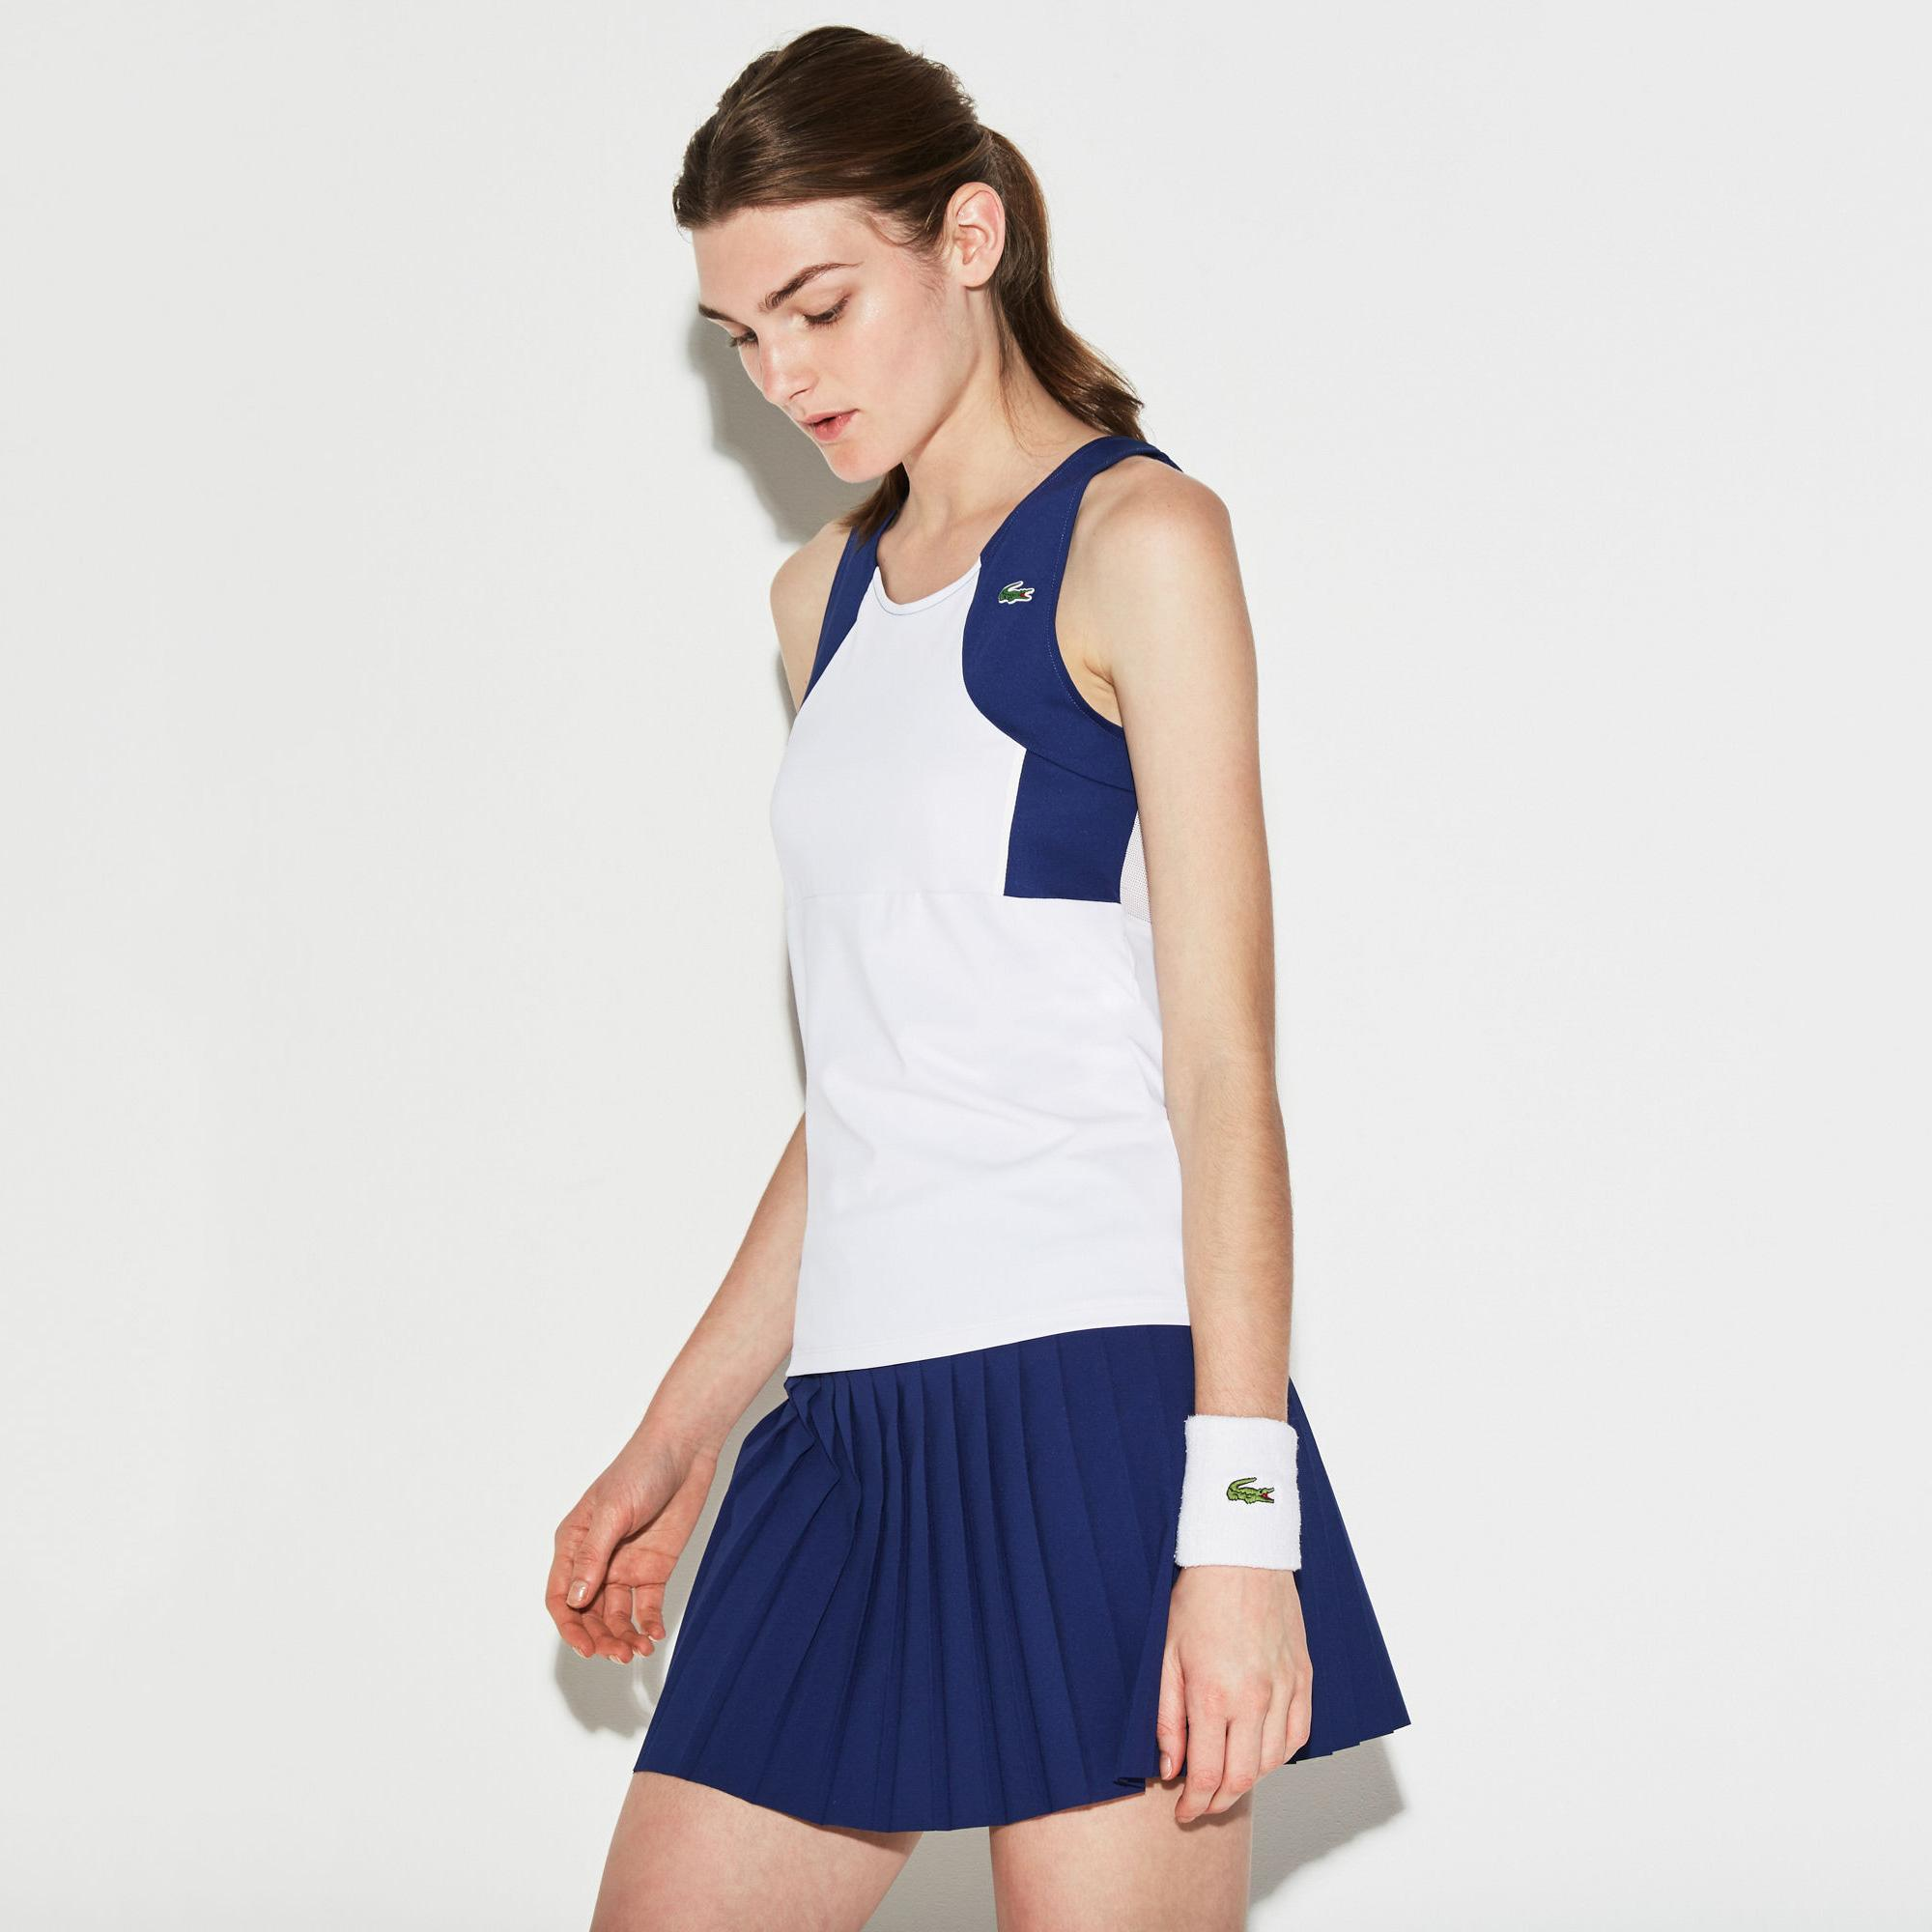 Lacoste Womens Stretch Jersey Tank - Blue/Ocean ...